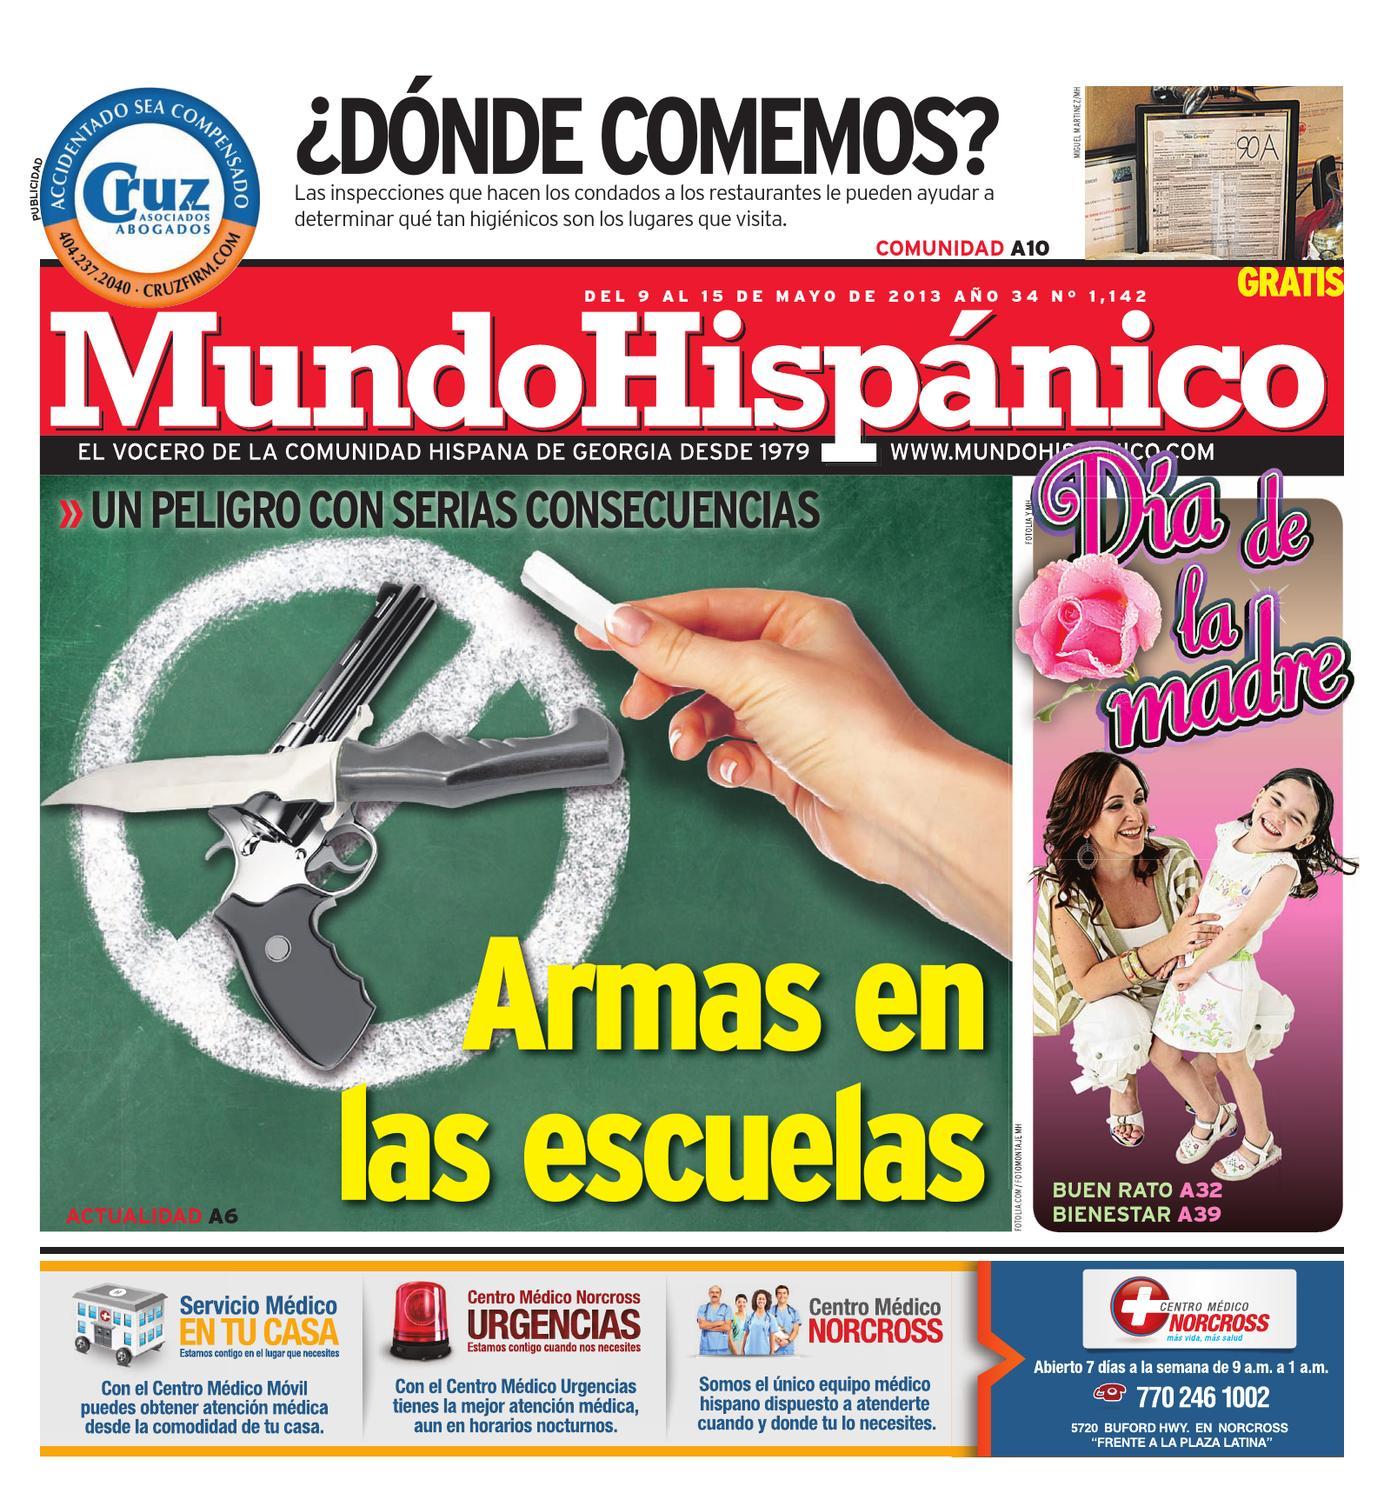 Mundo Hispanico - 05-09-13 by MUNDO HISPANICO - issuu